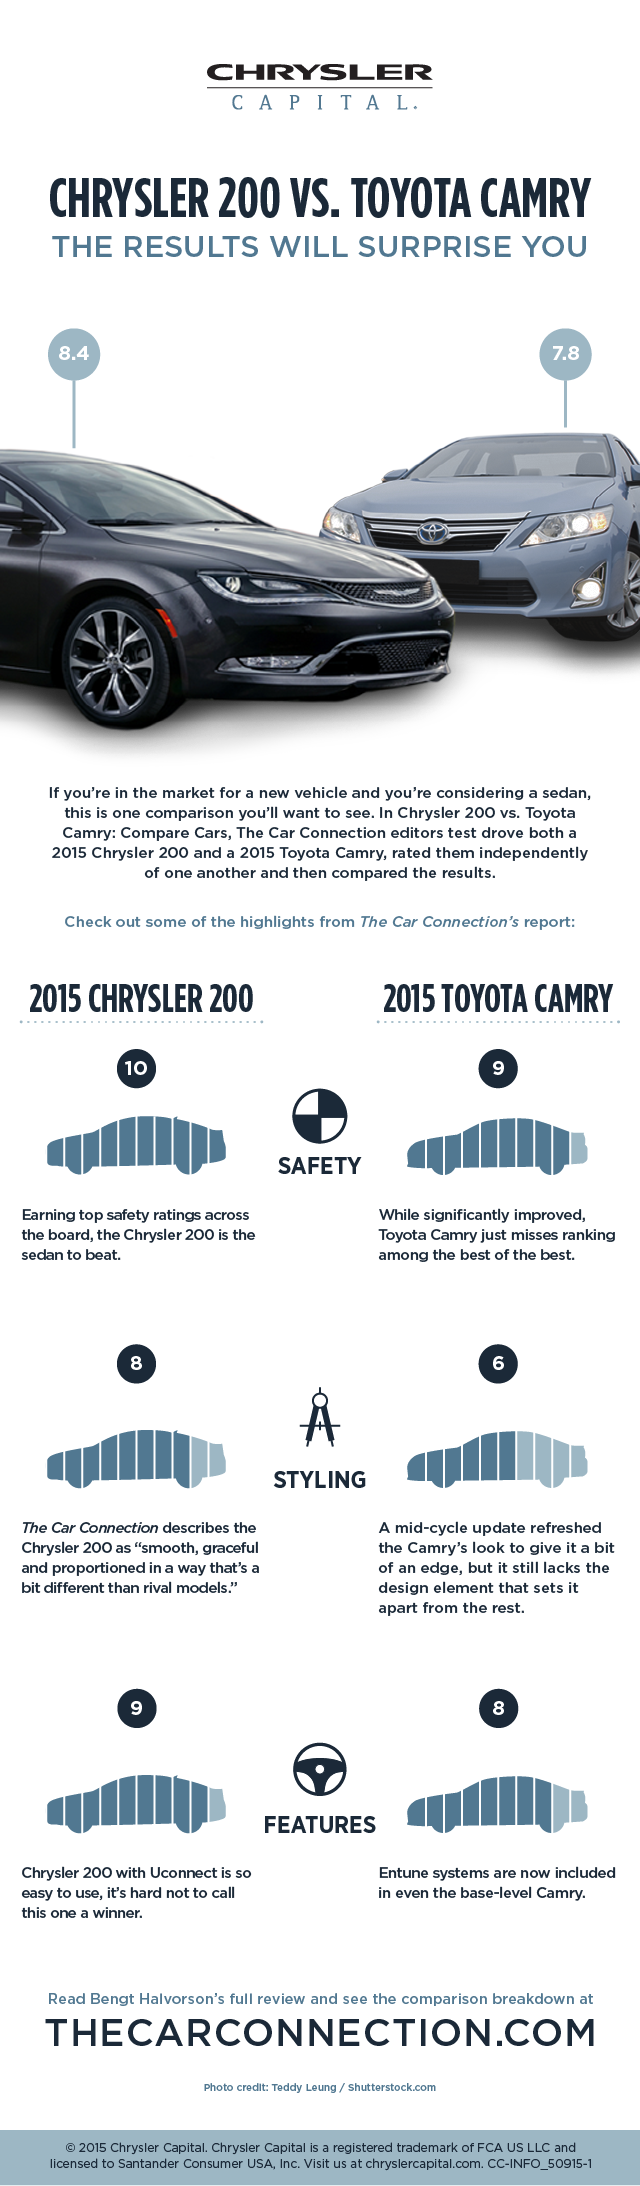 CC-INFO_50915-1 (200 vs Camry Infographic)-2